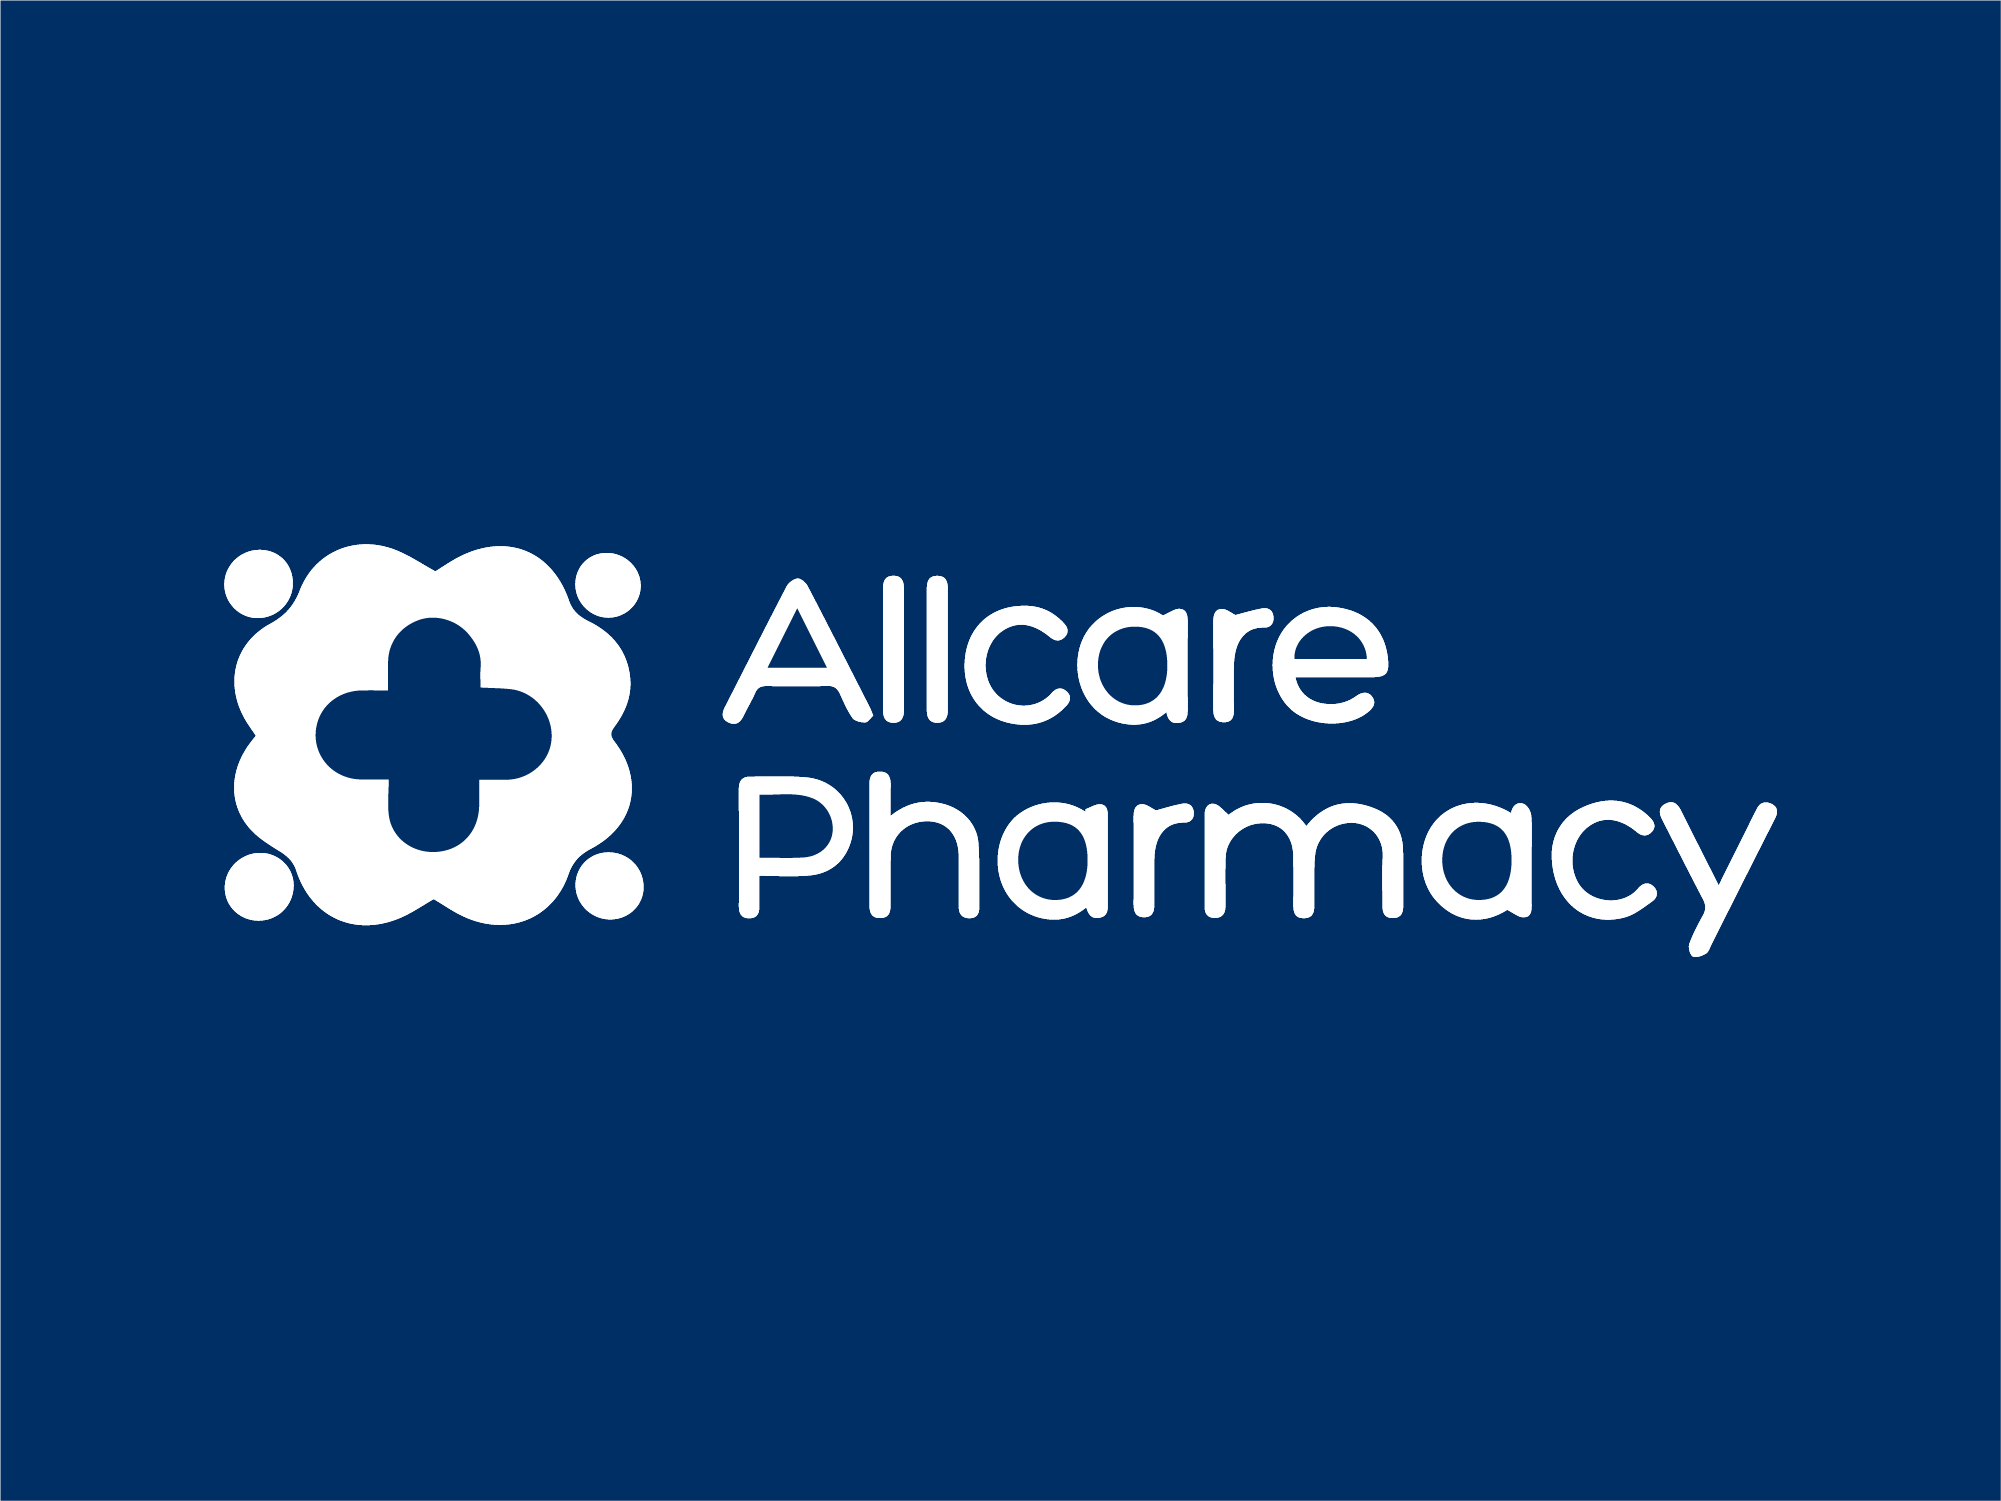 Allcare Pharmacy - Advised on the Restructuring & Refinancing